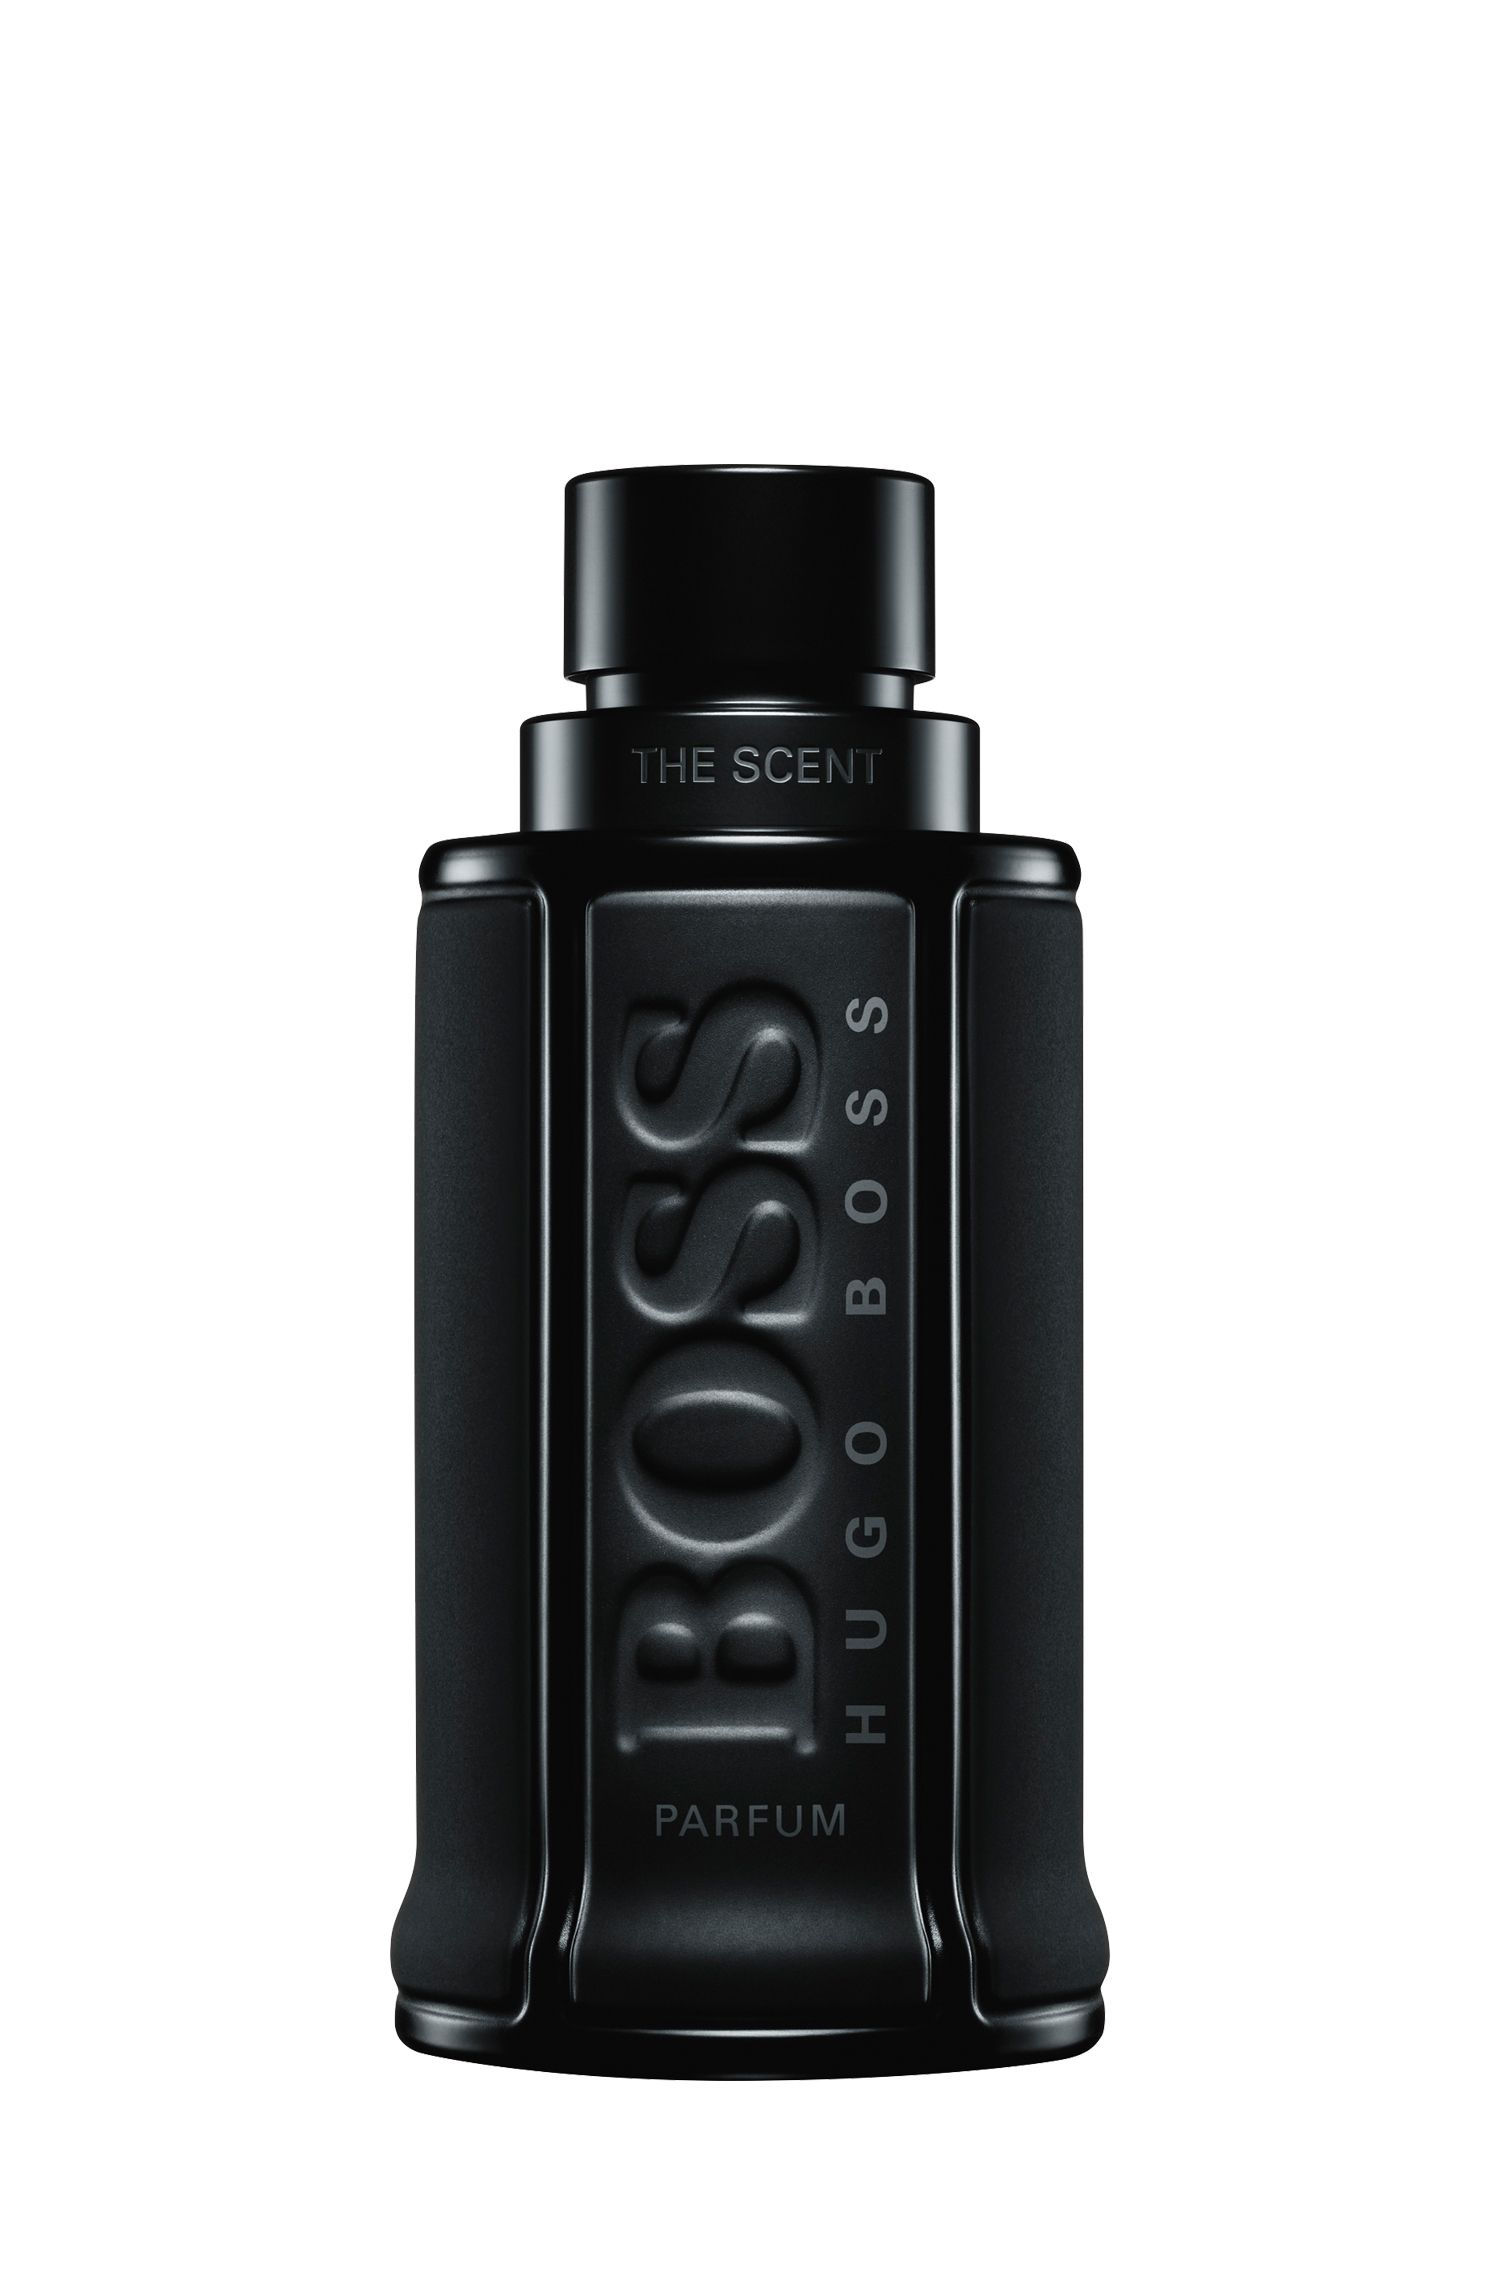 BOSS The Scent For Him eau de parfum 100ml